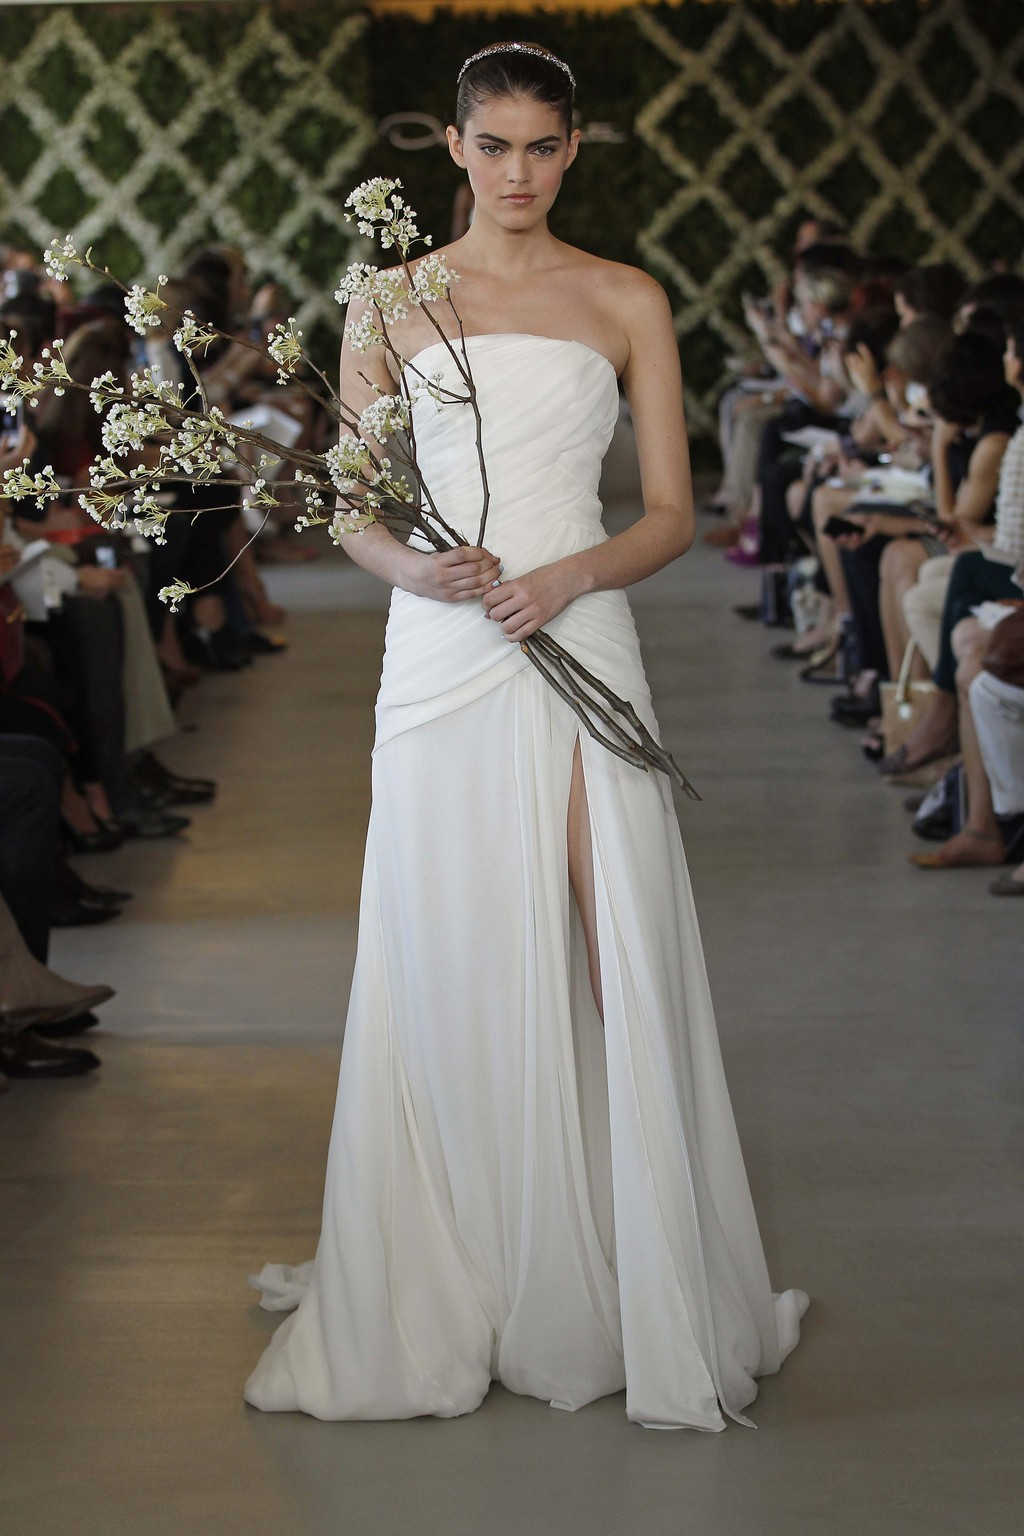 Shirred-wedding-dresses-oscar-de-la-renta-2013-bridal-gown.full